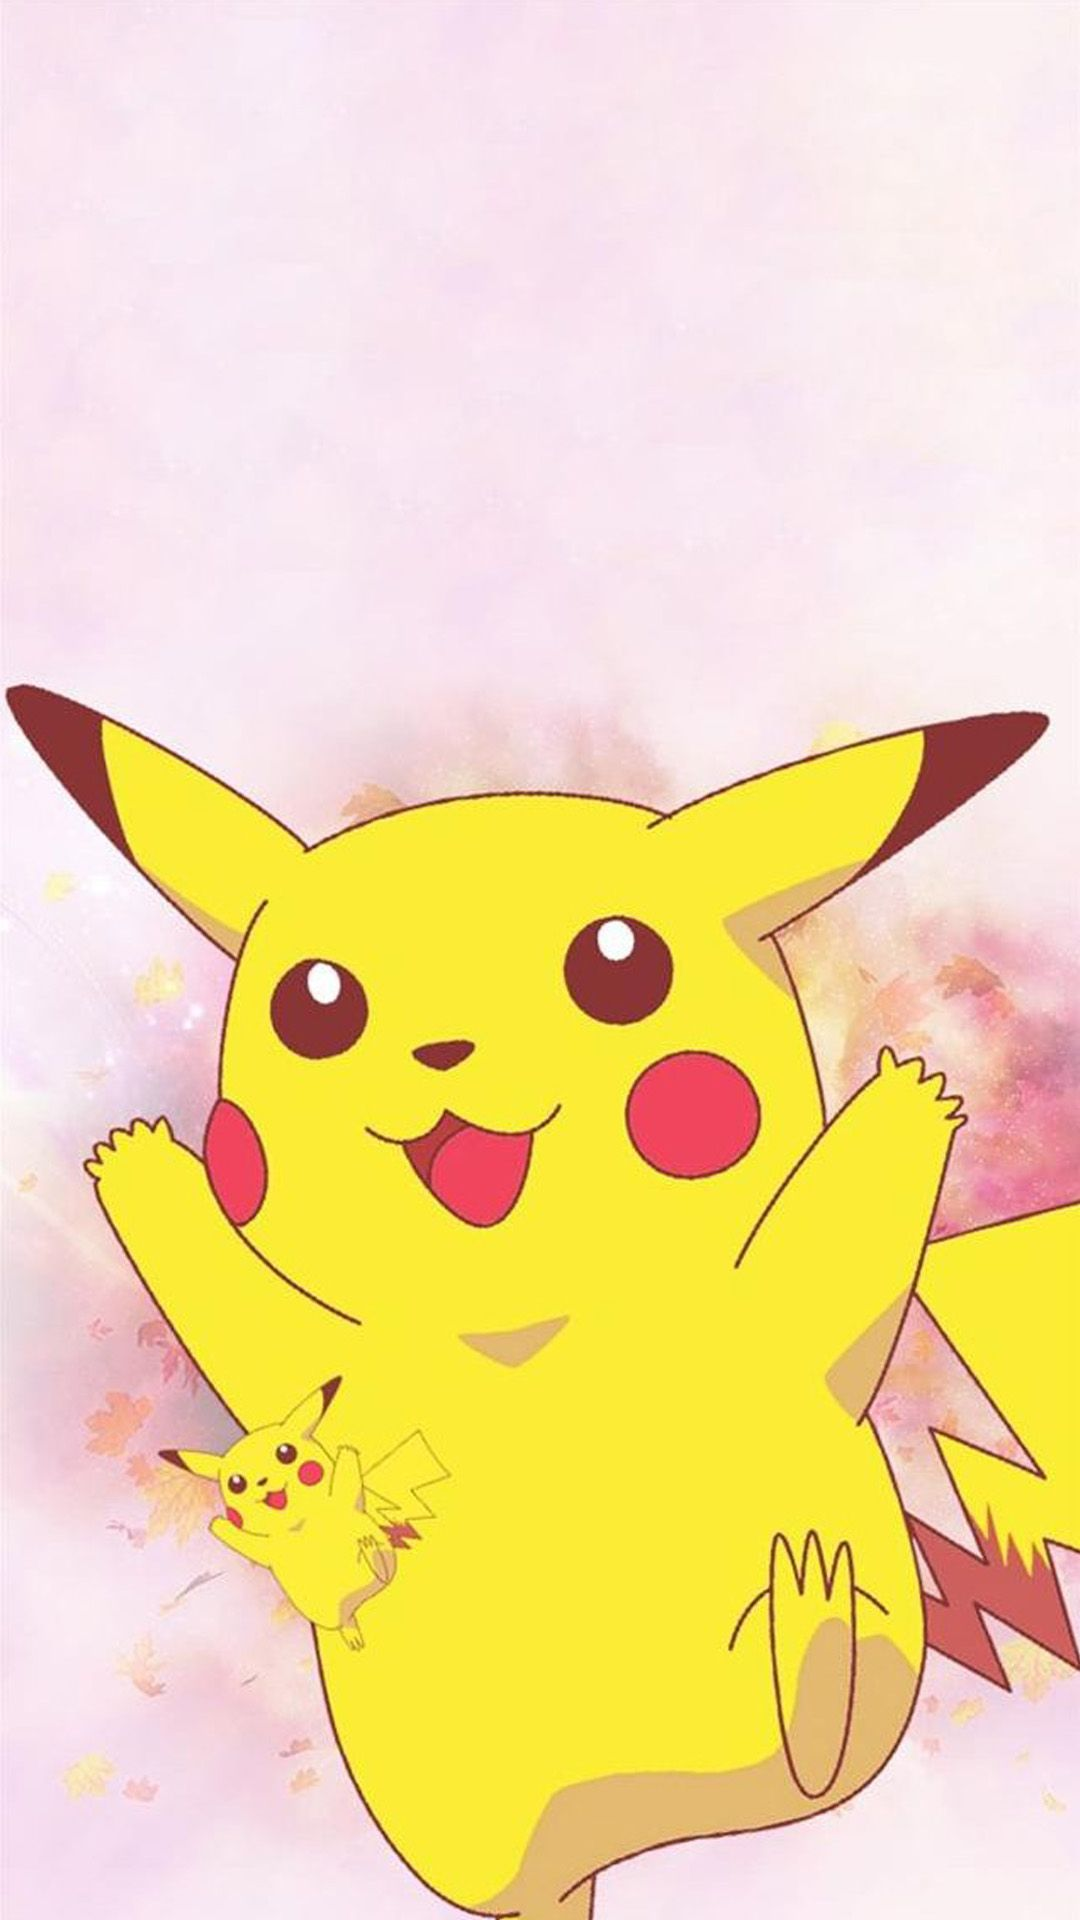 Pikachu Android wallpaper – Android HD wallpapers